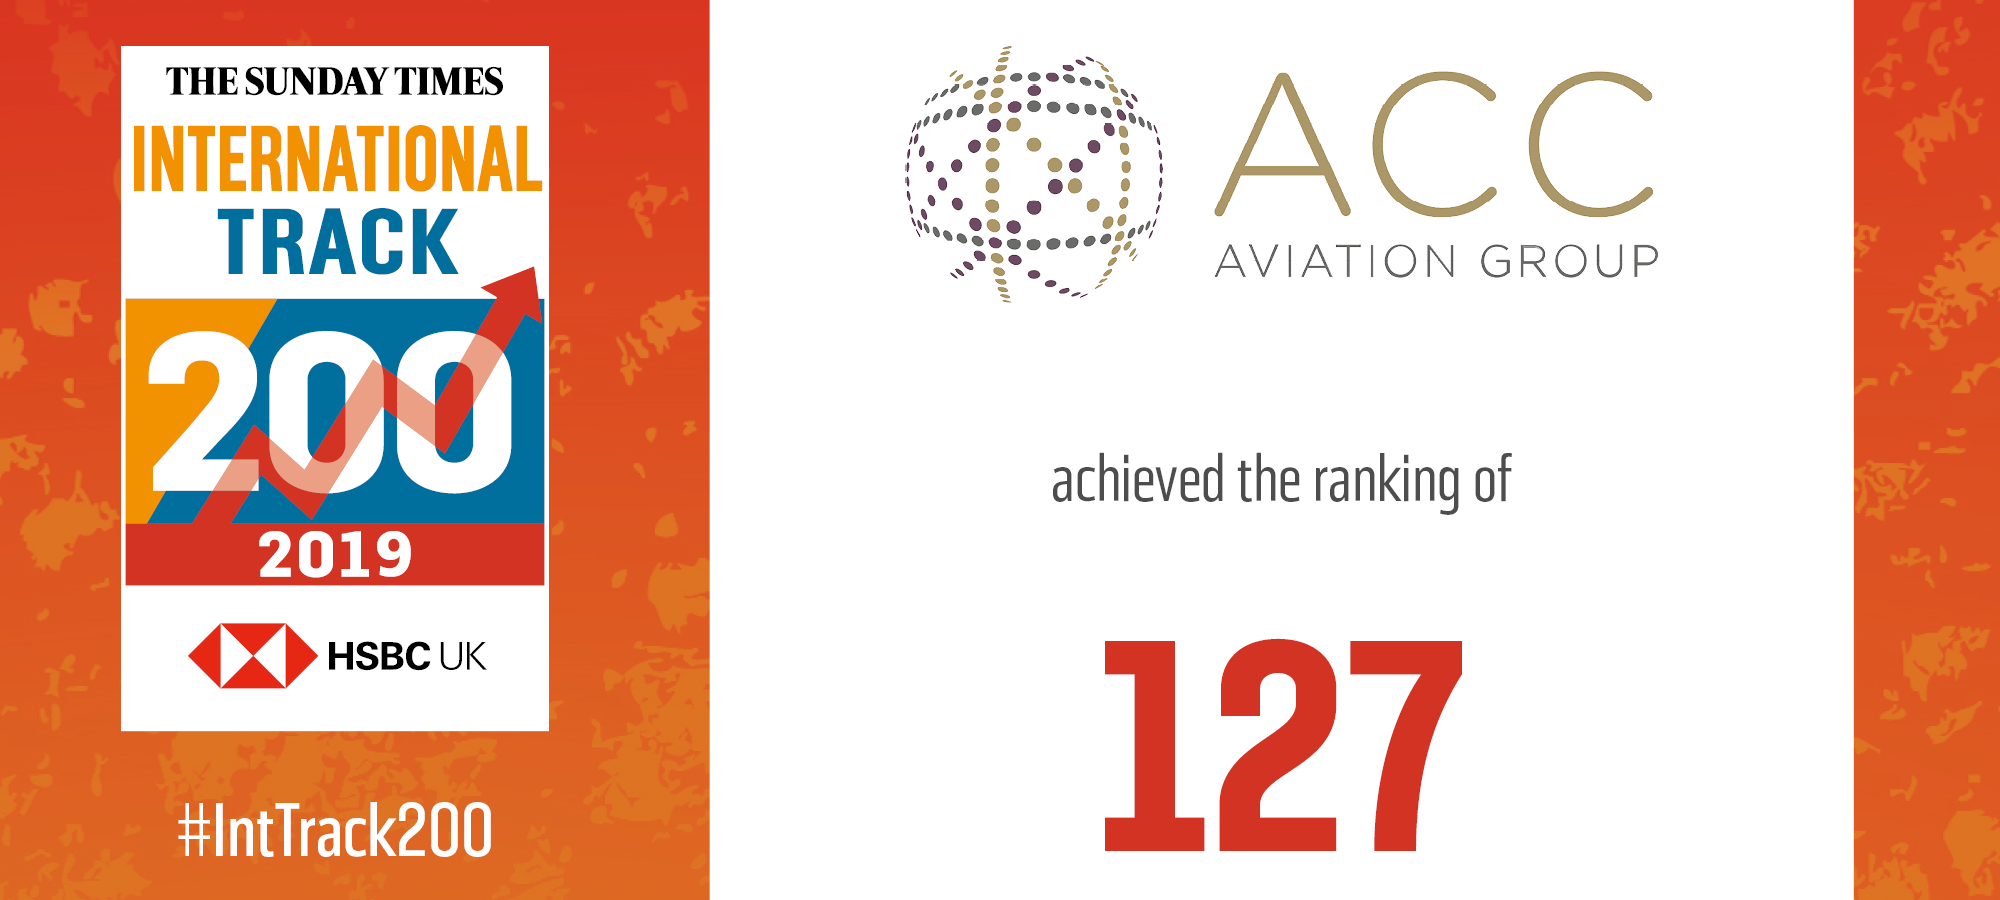 ACC Aviation Group Ranked 127th in The Sunday Times HSBC International Track 200